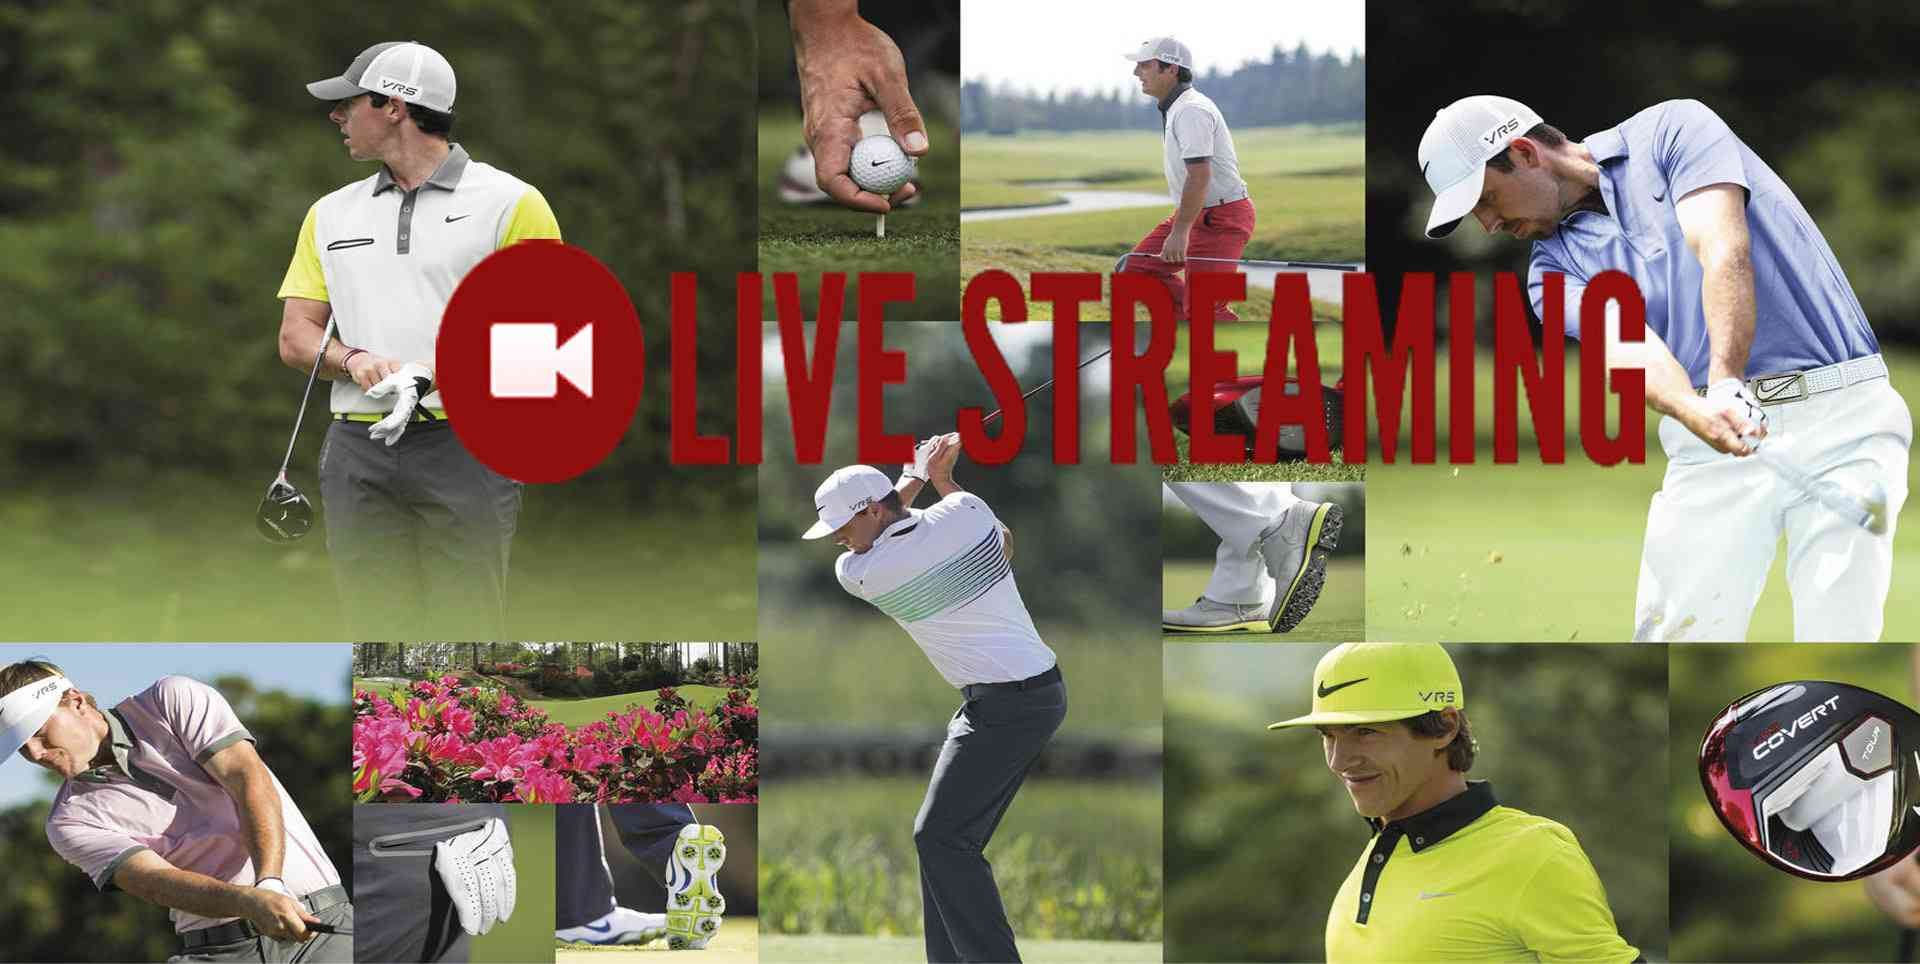 Golf Live Streaming 2018 slider